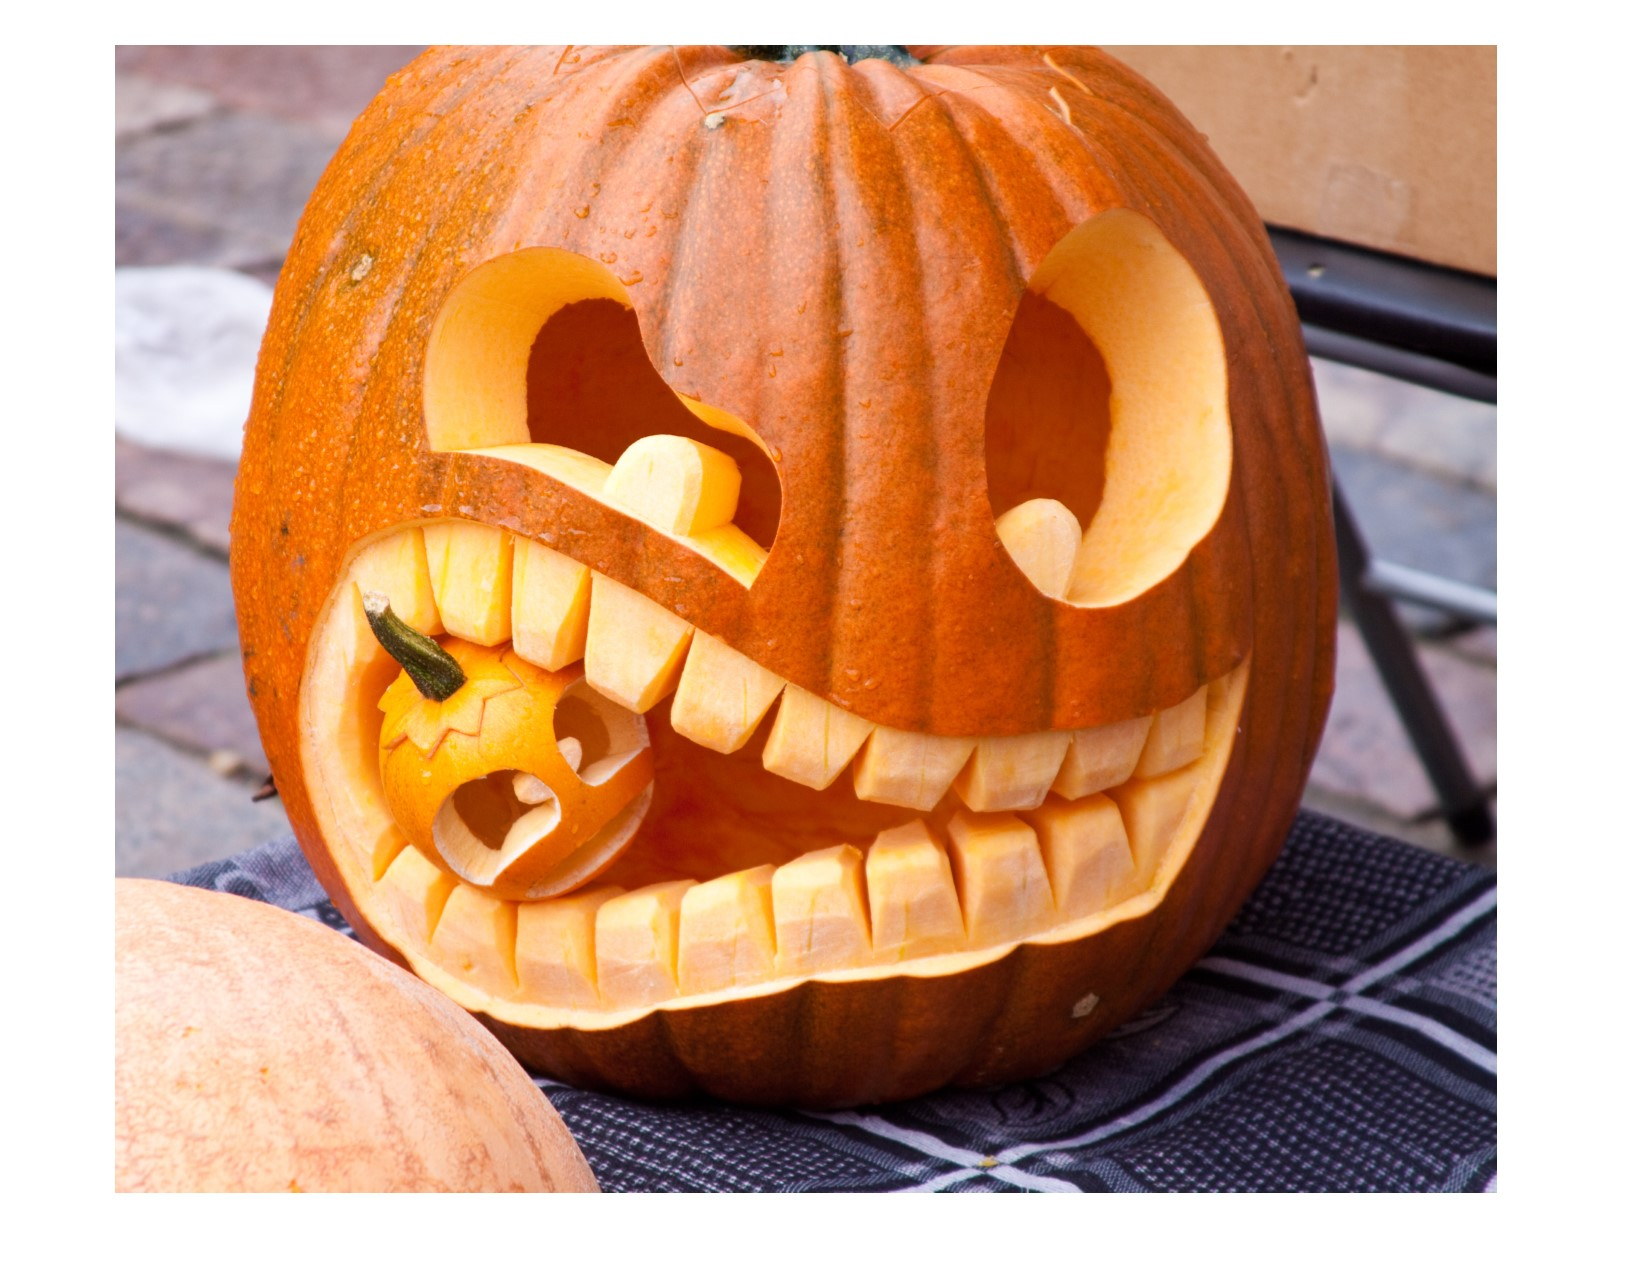 Truck or Treat Festival at The Village at Grand Traverse Commons